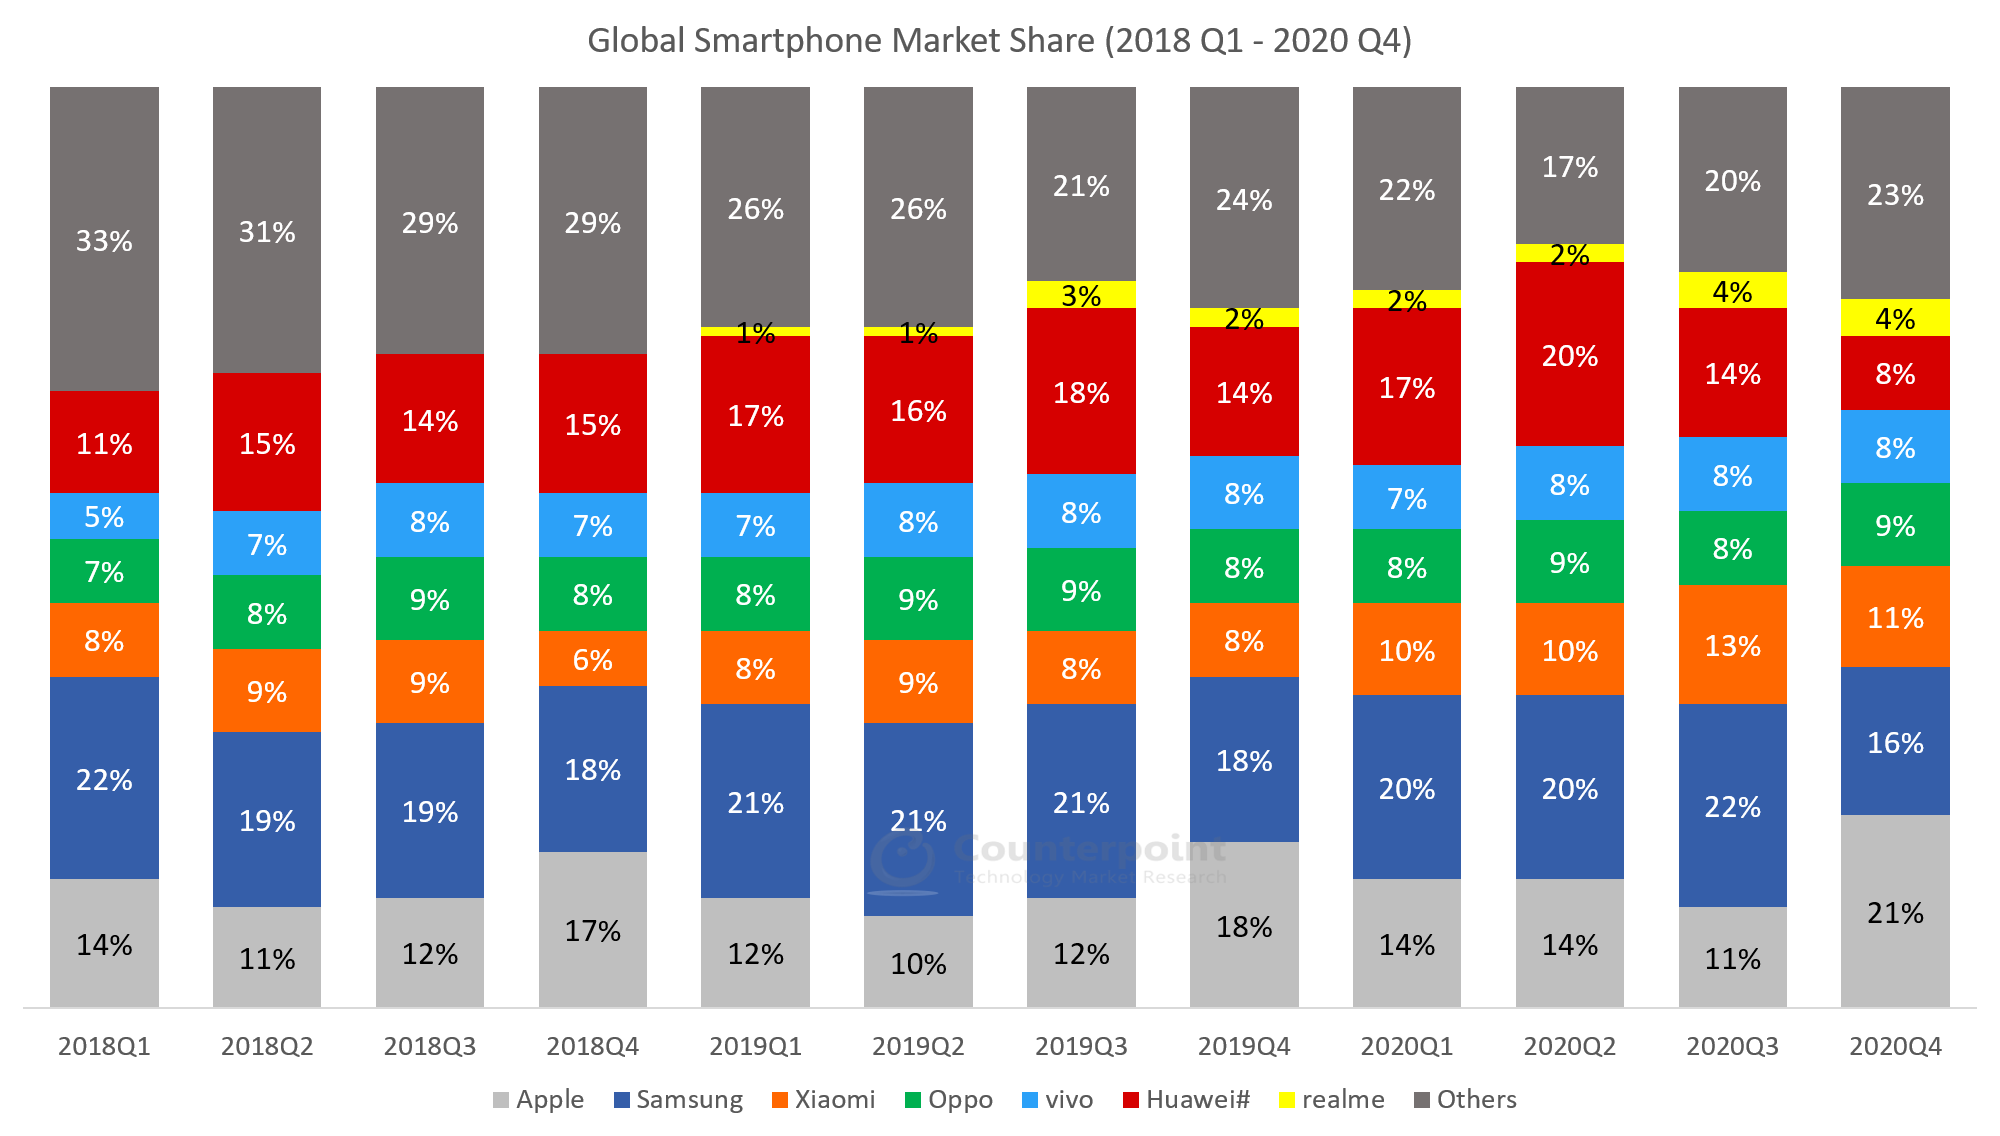 Counterpoint-Global-Smartphone-Quarterly-Market-Data-2018Q1-2020Q4